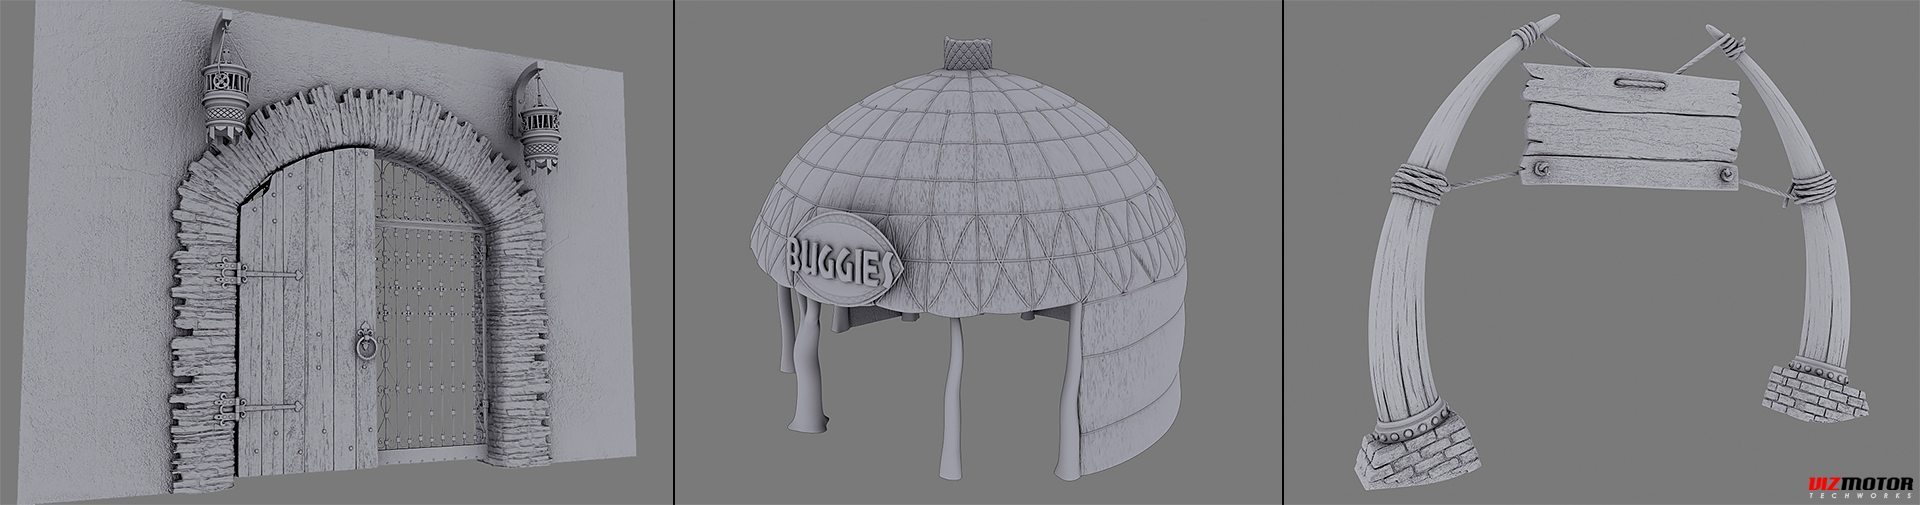 VizMotor_Structures